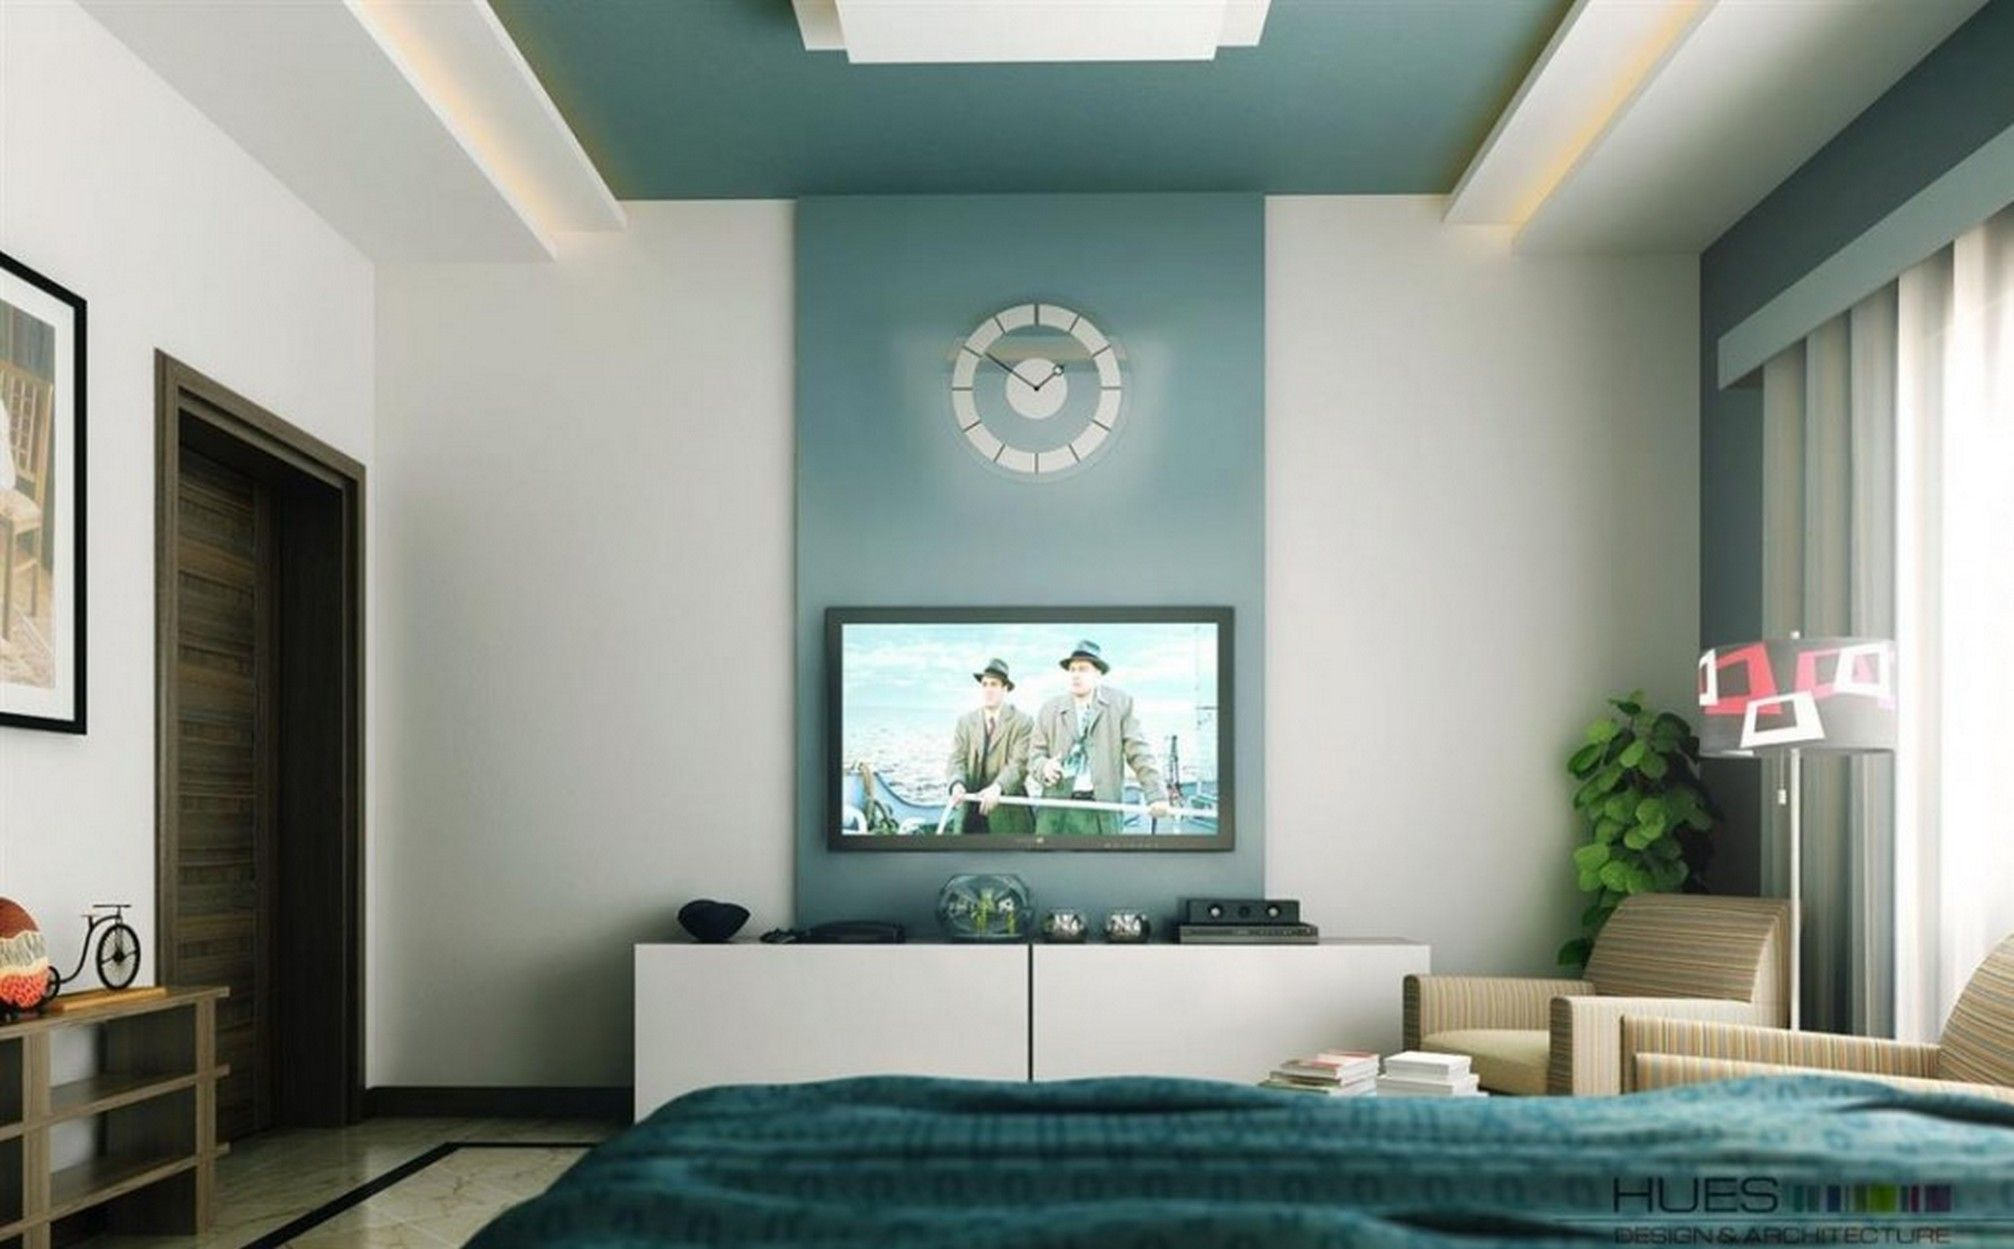 Accent Wall Color For High Walls With Round Clock Ideas And TV On